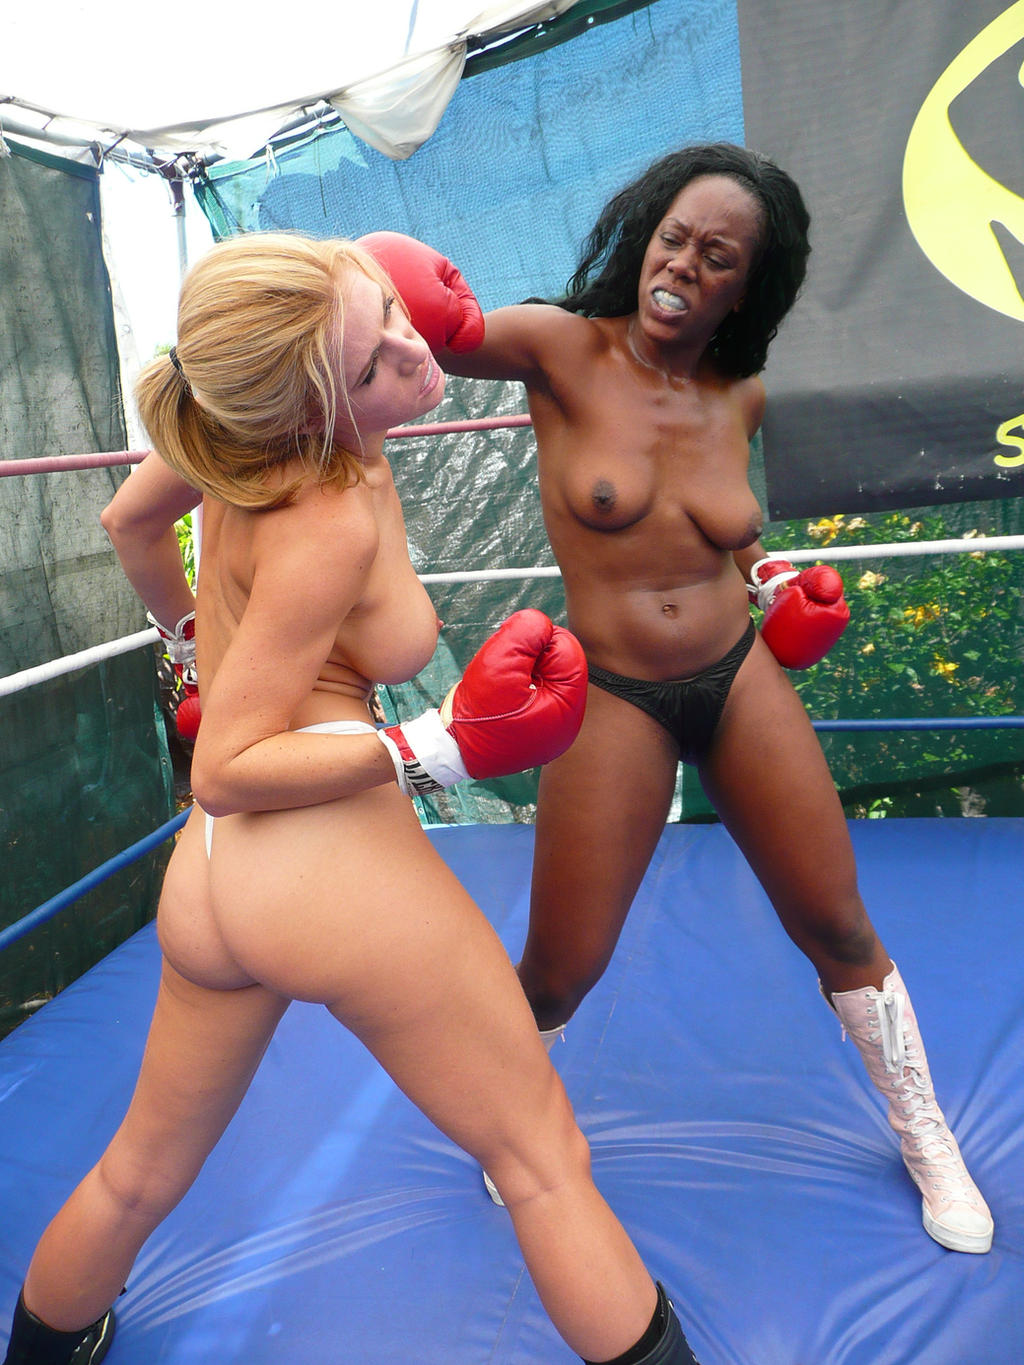 Nude boxing girls are absolutely